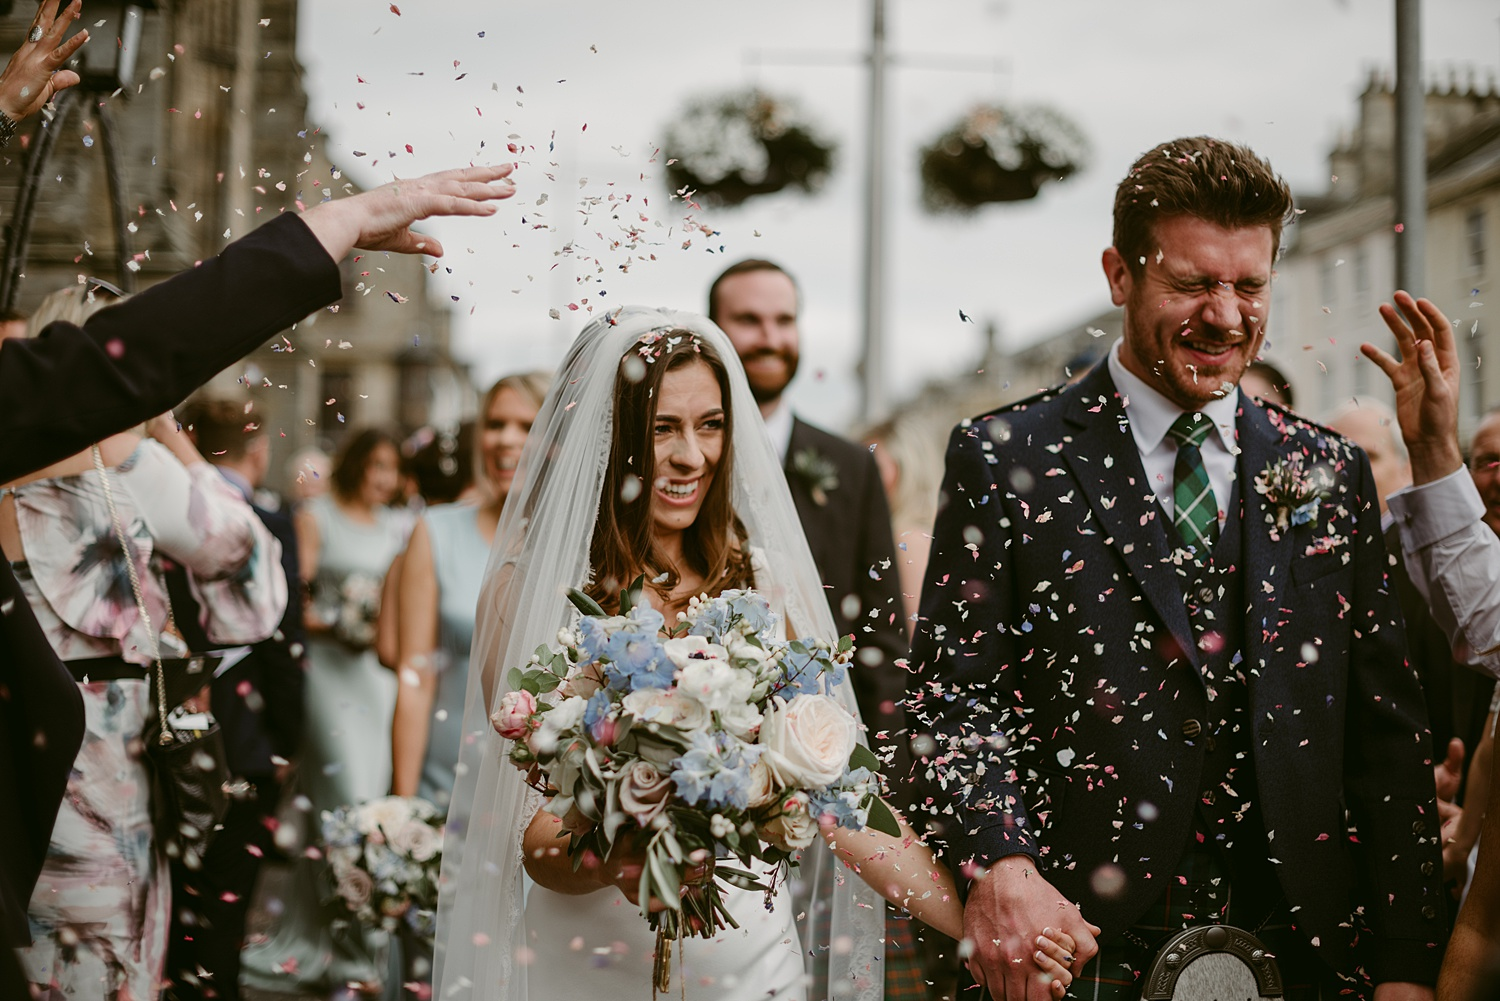 Claire-Fleck-Scottish-wedding-photography-2017__0121.jpg